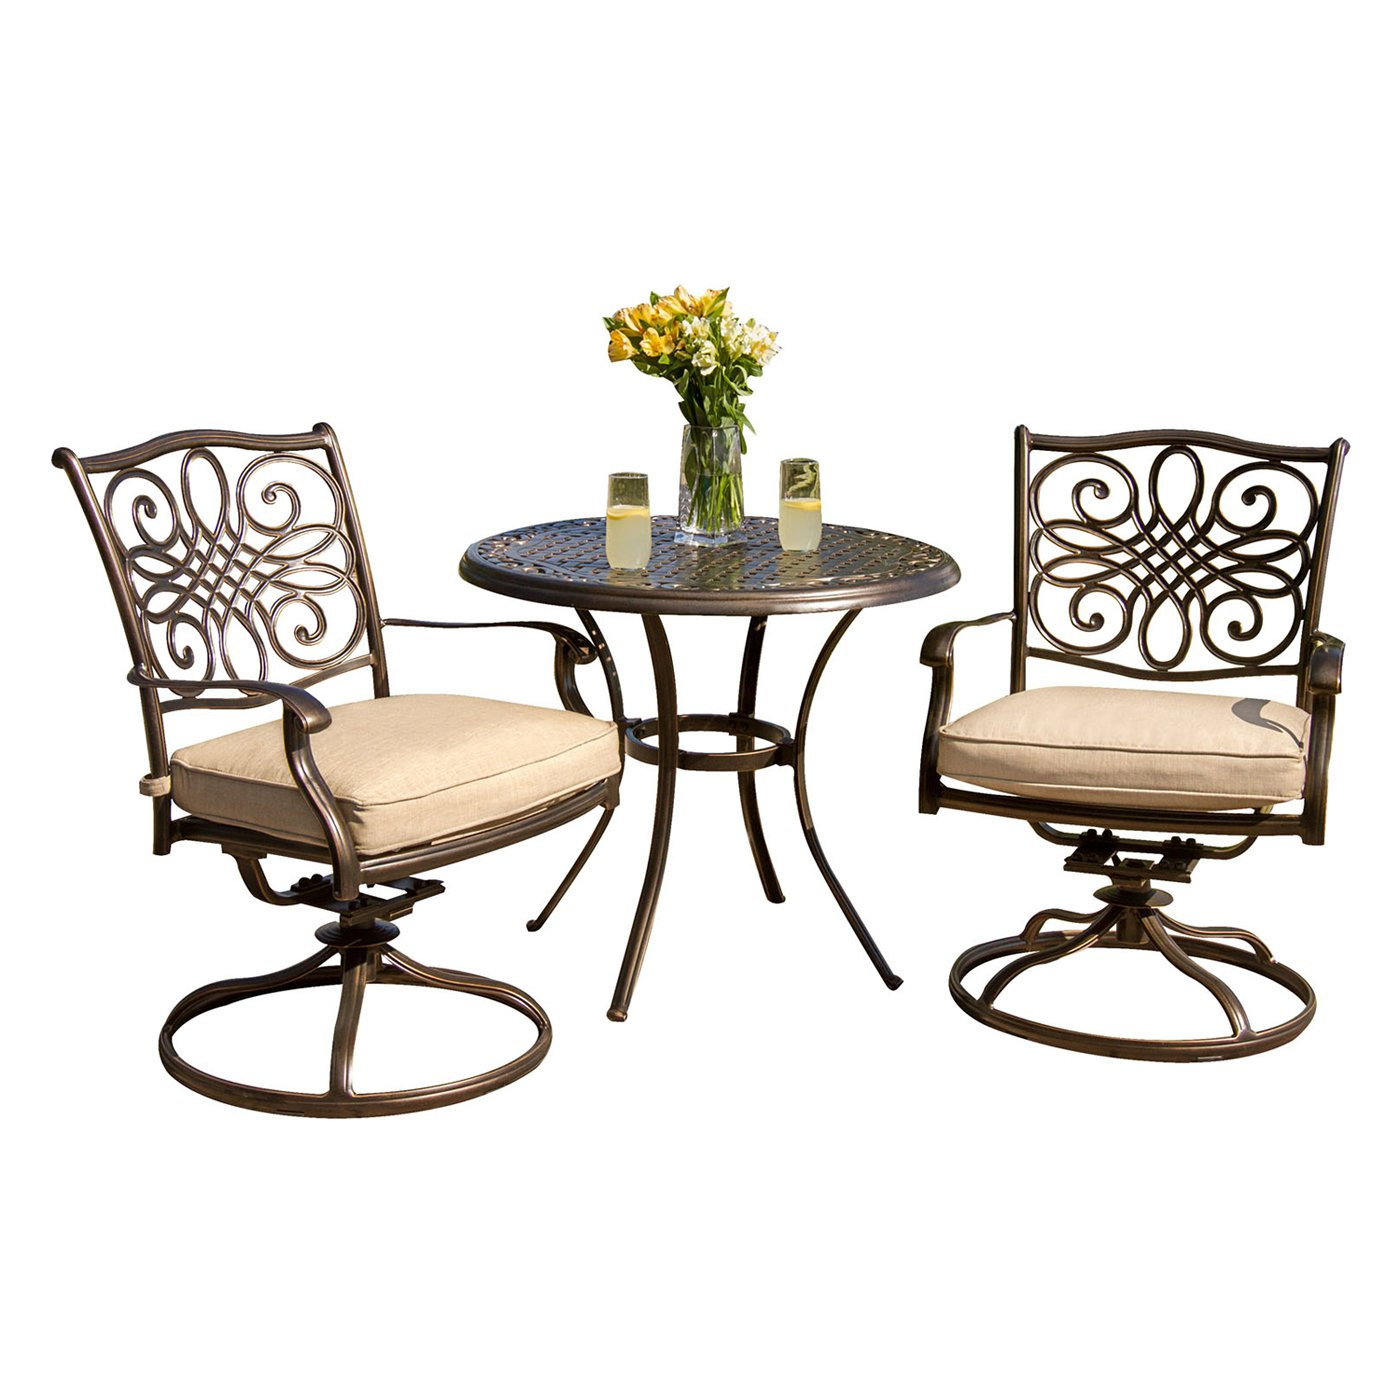 Best ideas about Hanover Outdoor Furniture . Save or Pin Hanover Outdoor Furniture TRADITIONS3PCSW Traditions 3 Now.